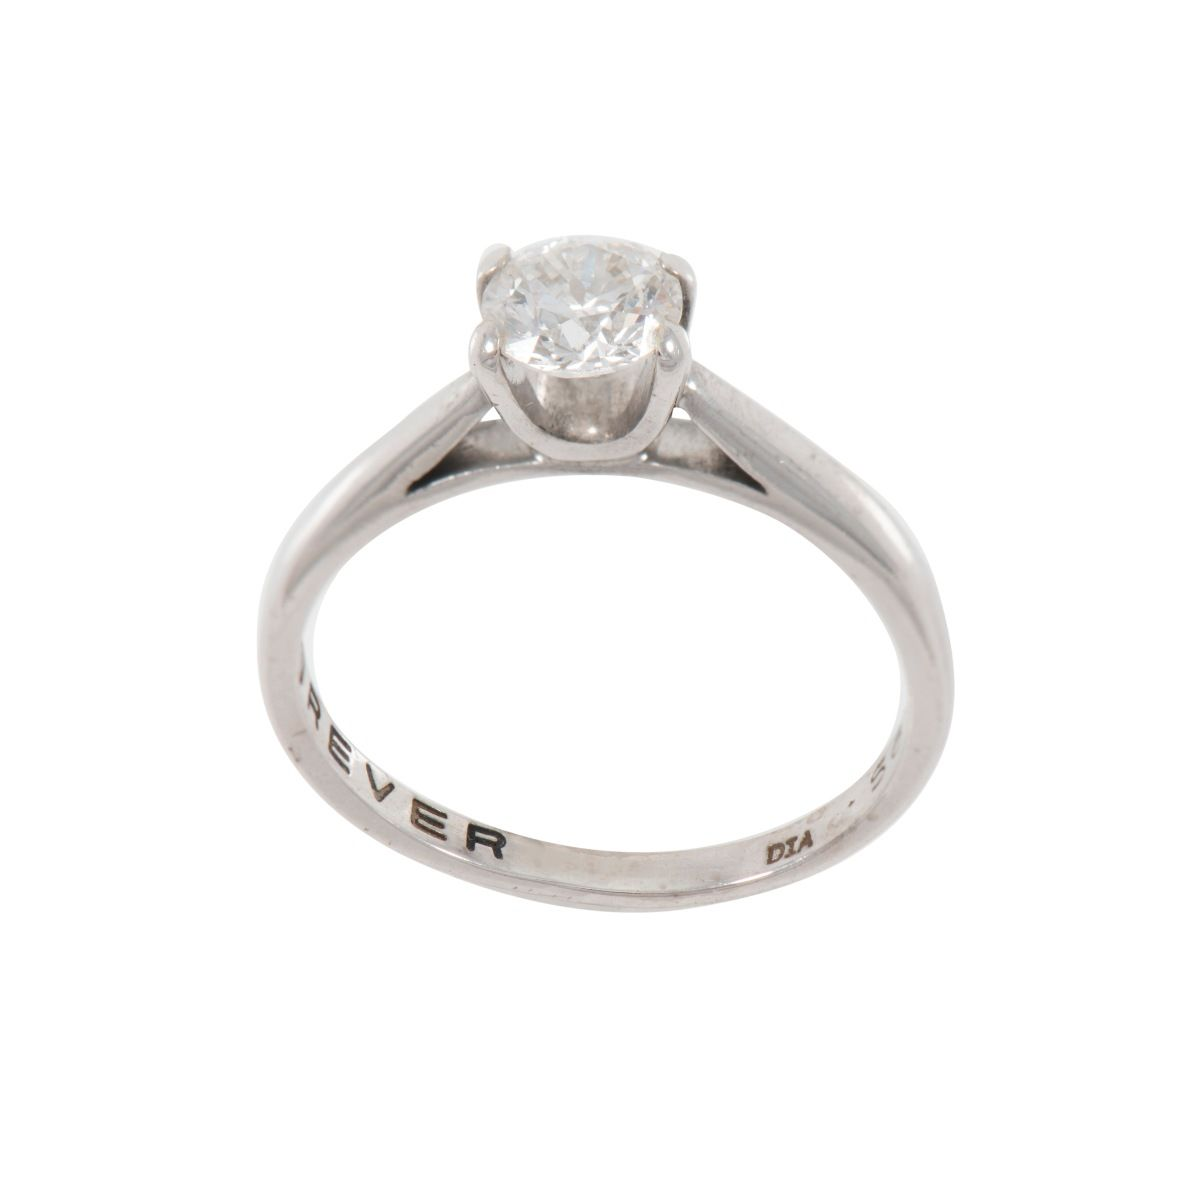 18ct White Gold Ladies Round 0.56ct Solitaire Ring Size K